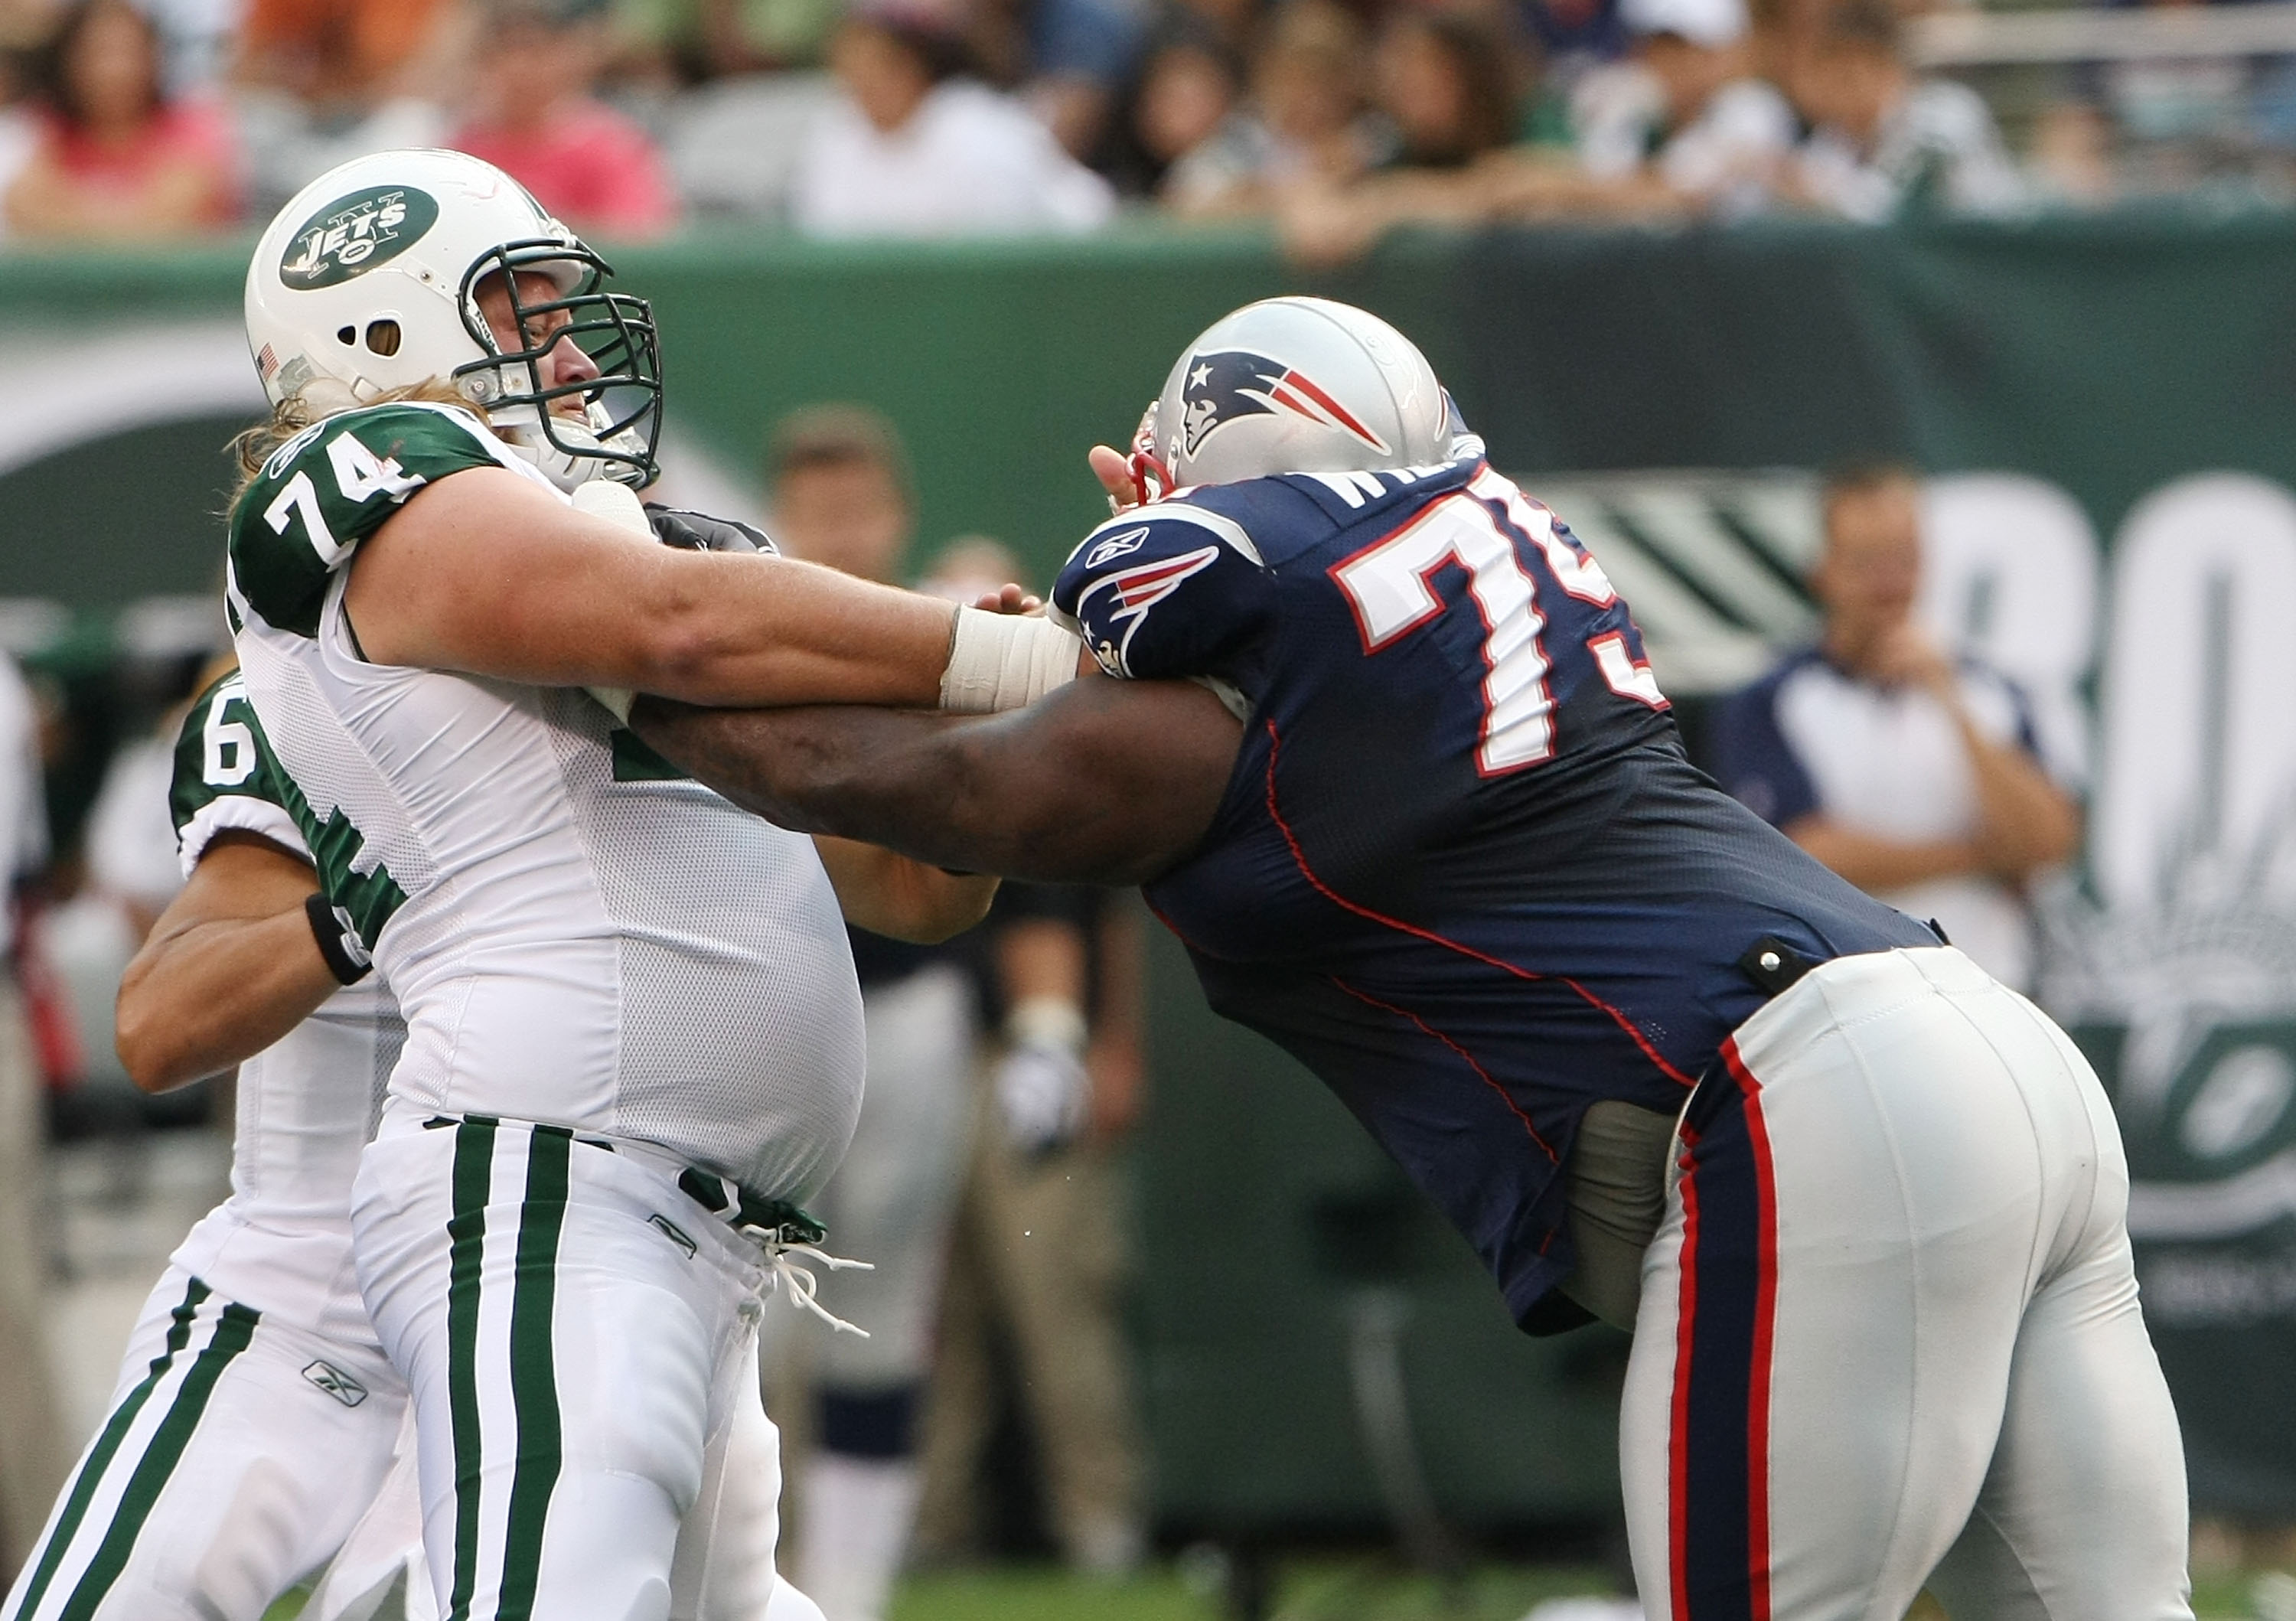 EAST RUTHERFORD, NJ - SEPTEMBER 19:  Nick Mangold #74 of the New York Jets blocks Vince Wilfork #74 of the New England Patriots during their  game on September 19, 2010 at the New Meadowlands Stadium  in East Rutherford, New Jersey.  (Photo by Al Bello/Ge